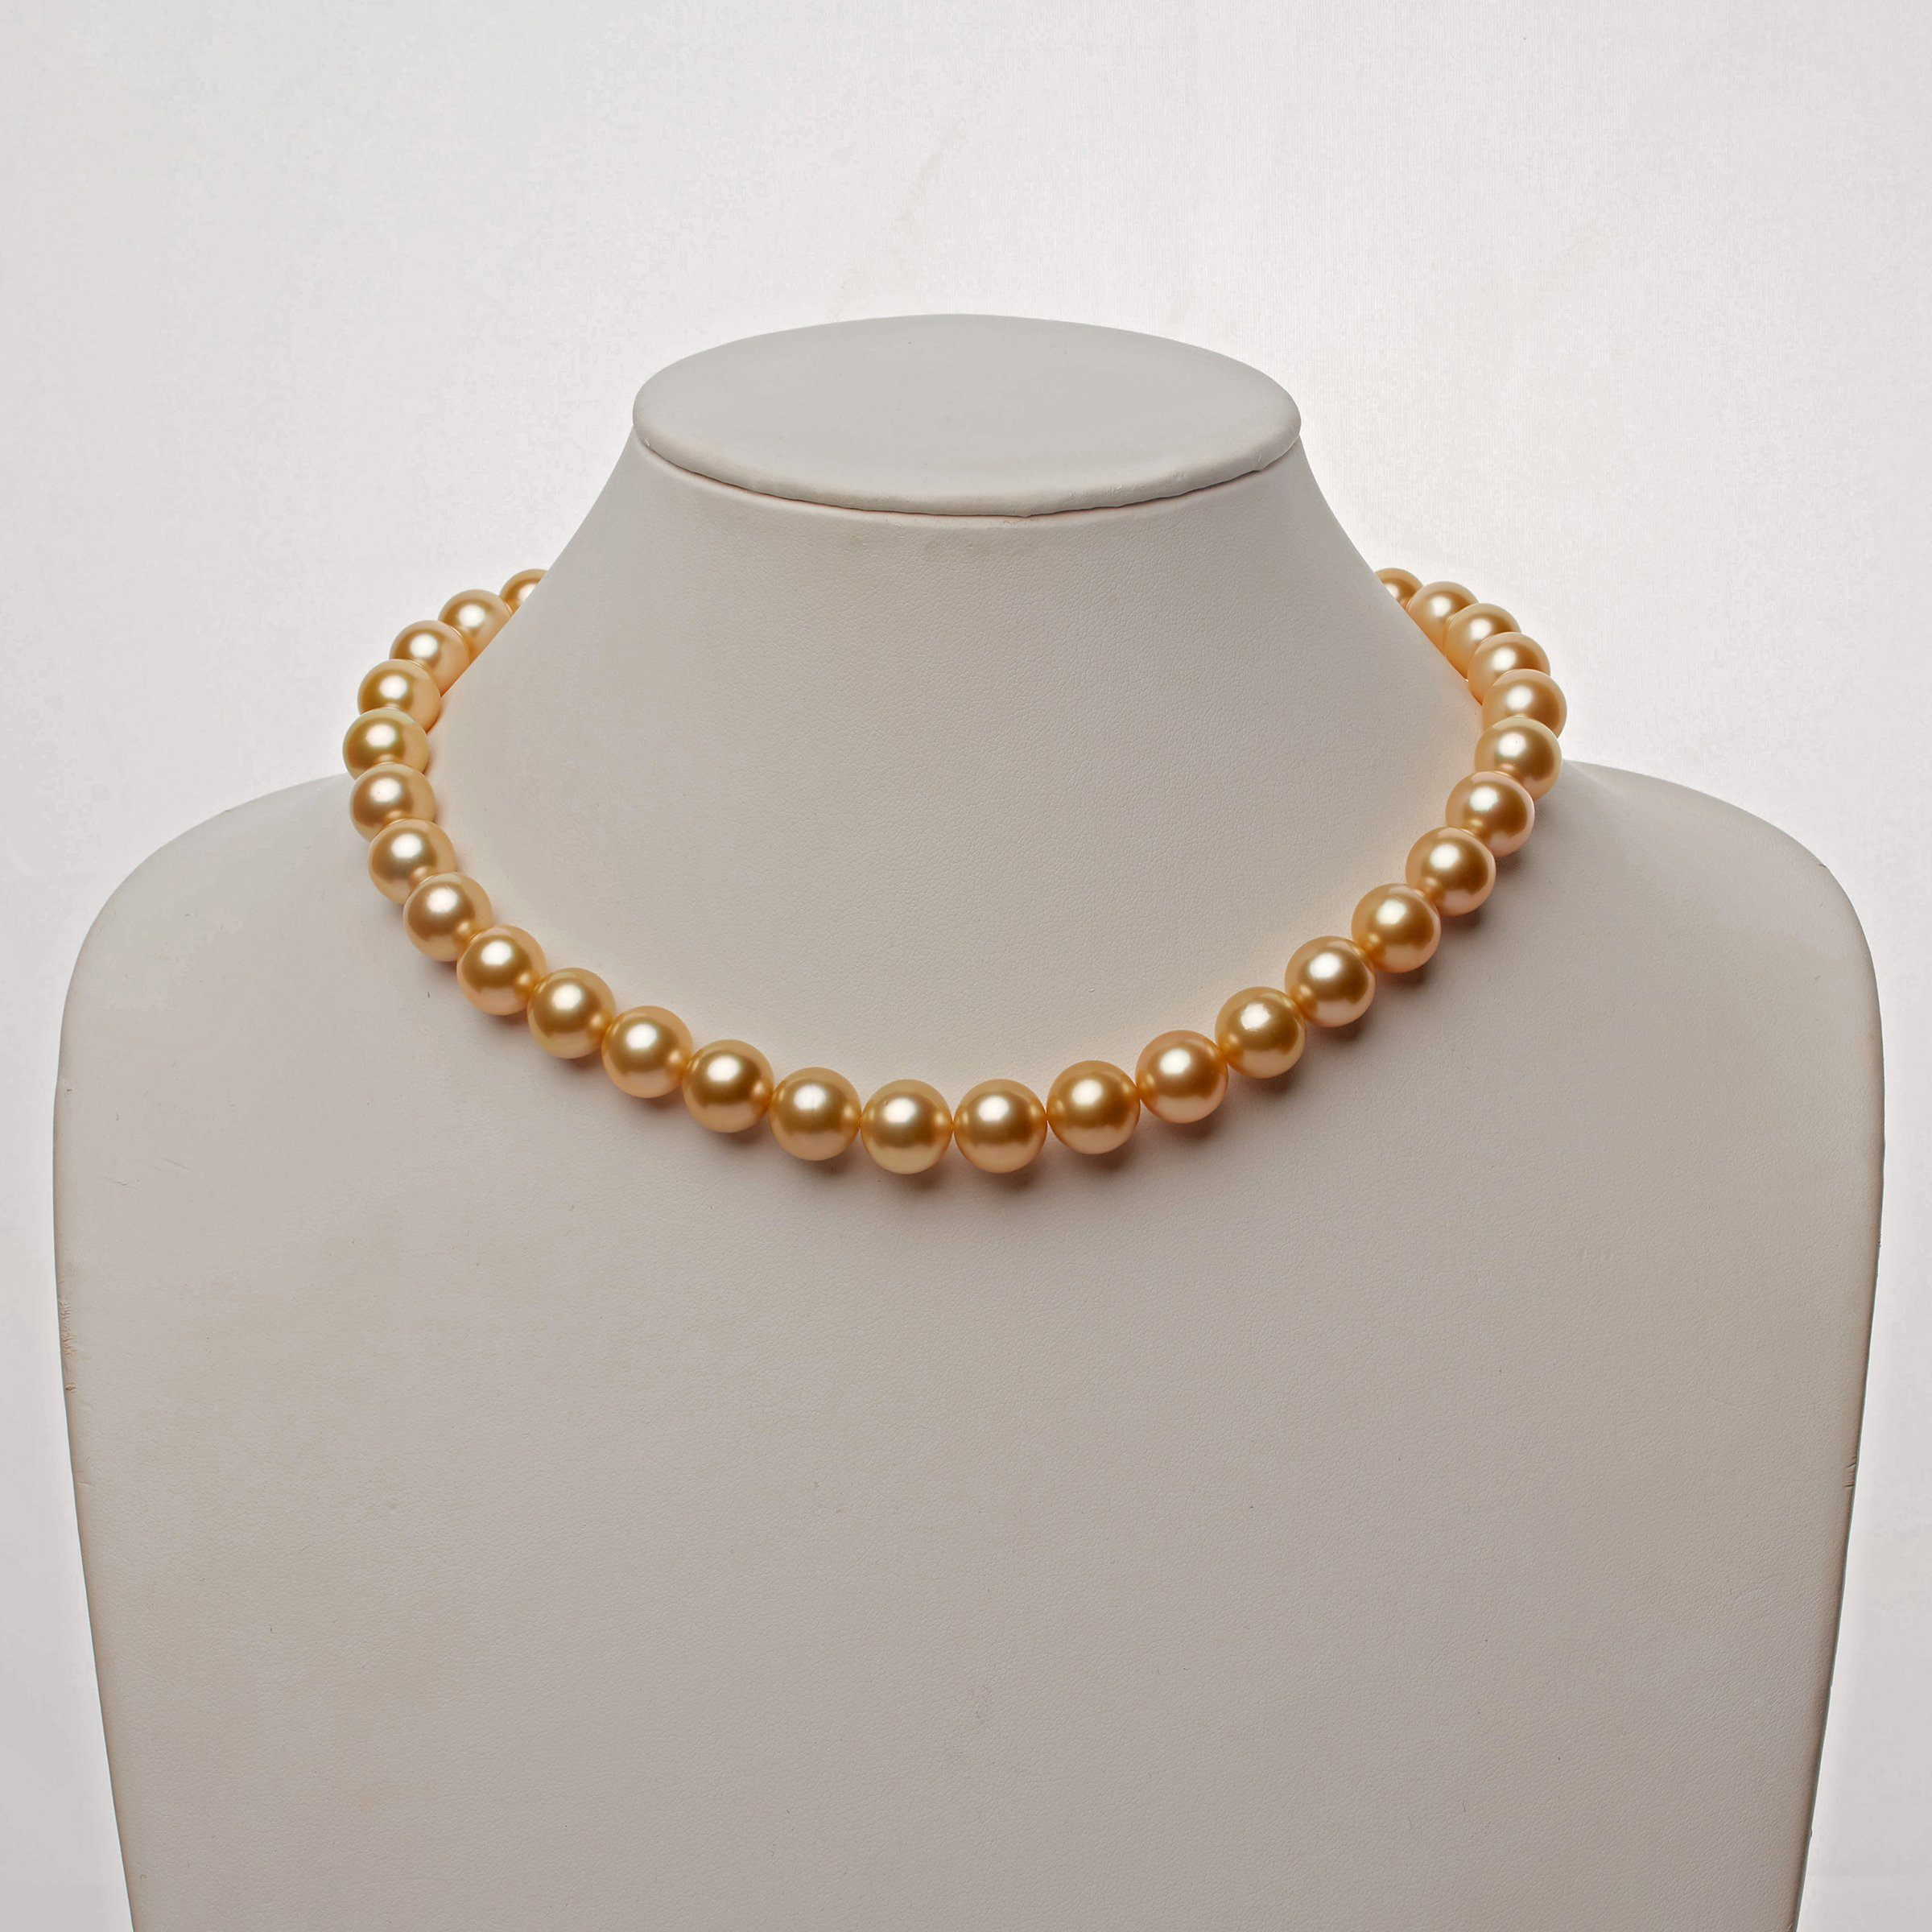 10.2-11.9 mm AAA Golden South Sea Round Pearl Necklace